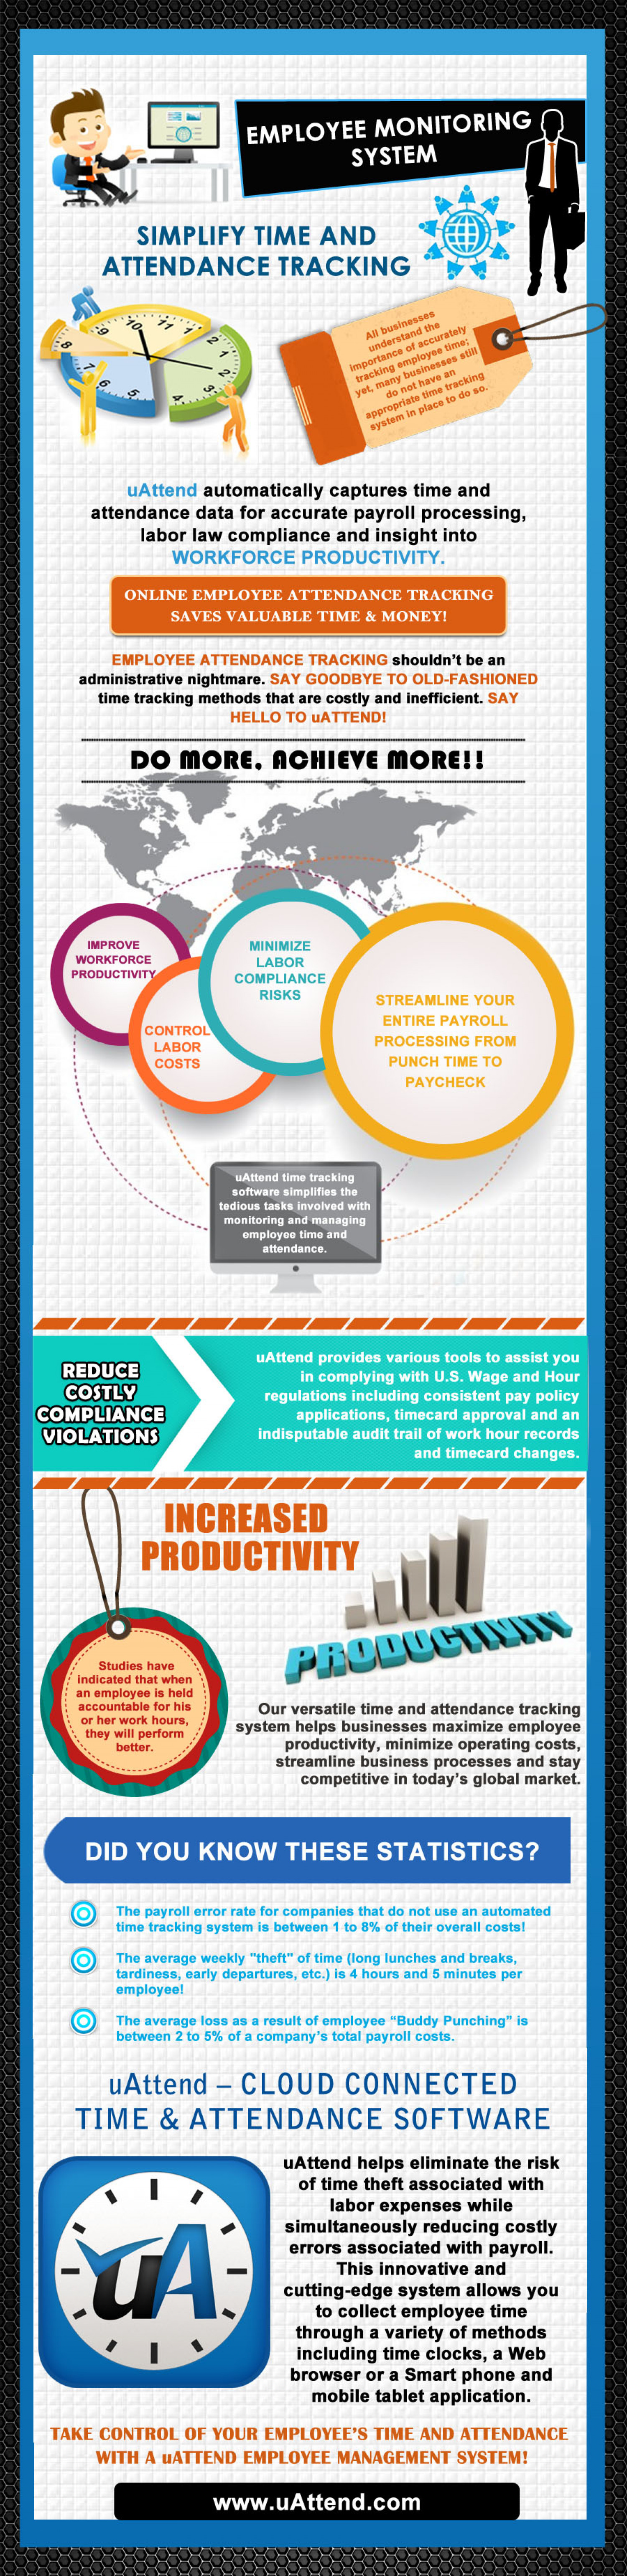 Employee Monitoring System Infographic